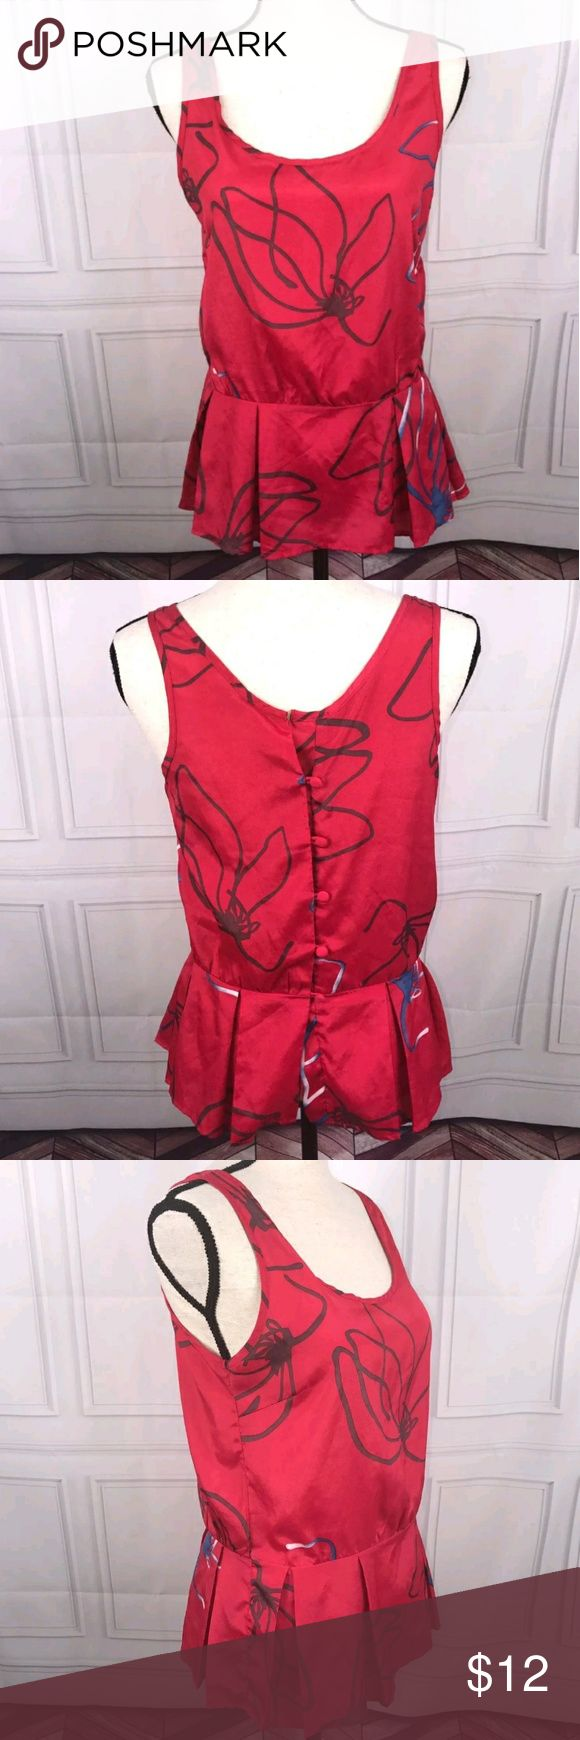 Charlotte Russe Medium Red Sleeveless Blouse Charlotte Russe Medium Red Sleeveless Peplum Blouse  Very good used condition  See pictures for additional details, flaws (if any), fabric content, cleaning instructions and measurements.  Thank you for looking at my store! Charlotte Russe Tops Blouses